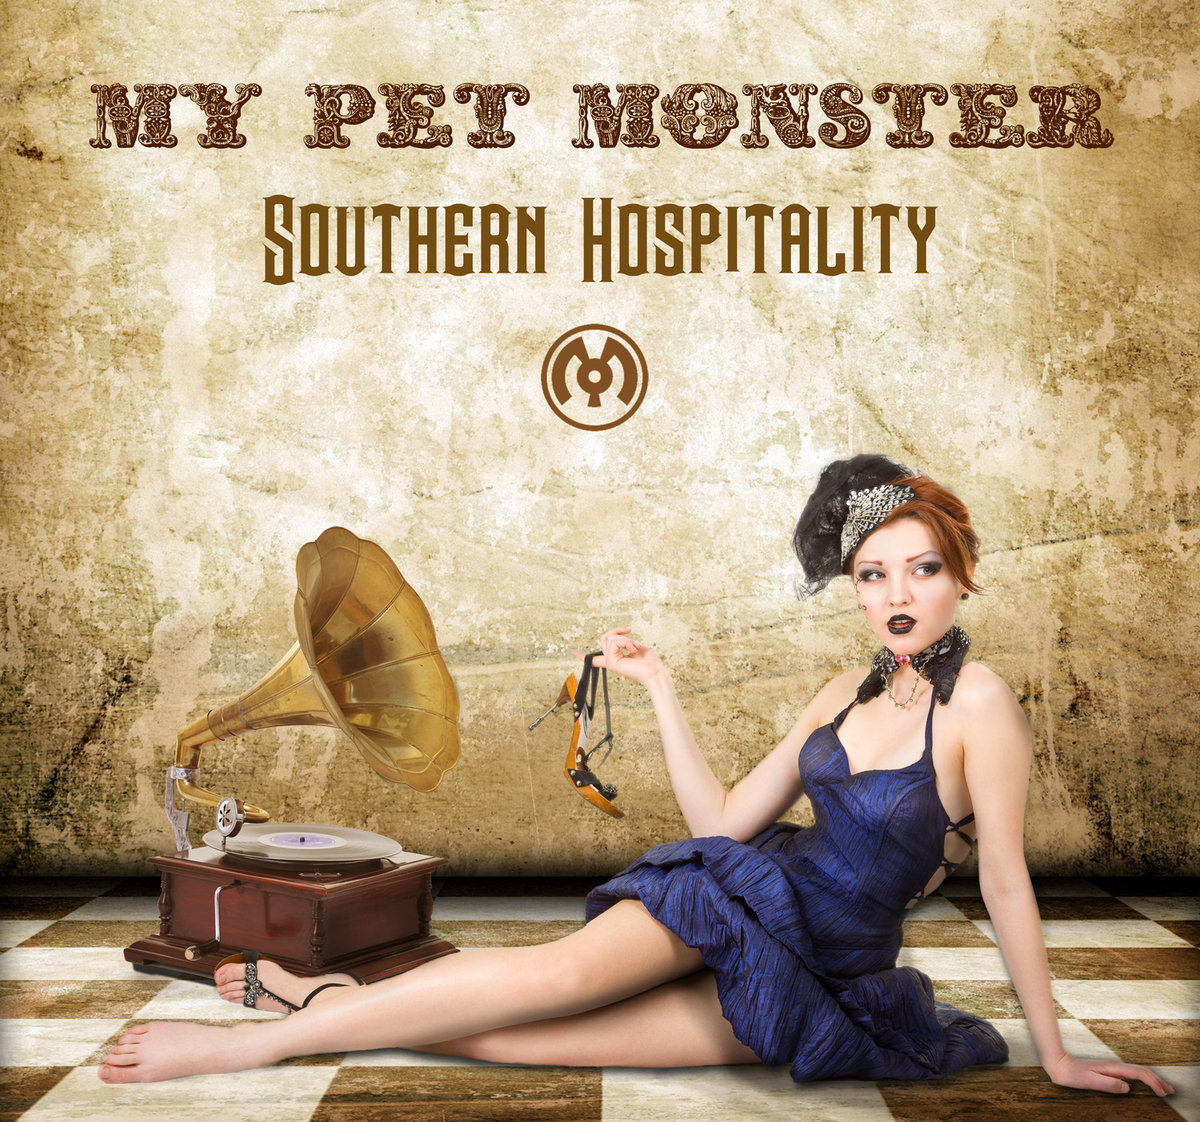 My Pet Monster - Southern Hospitality (h00zy do) @ 'Southern Hospitality' album (electronic, dubstep)